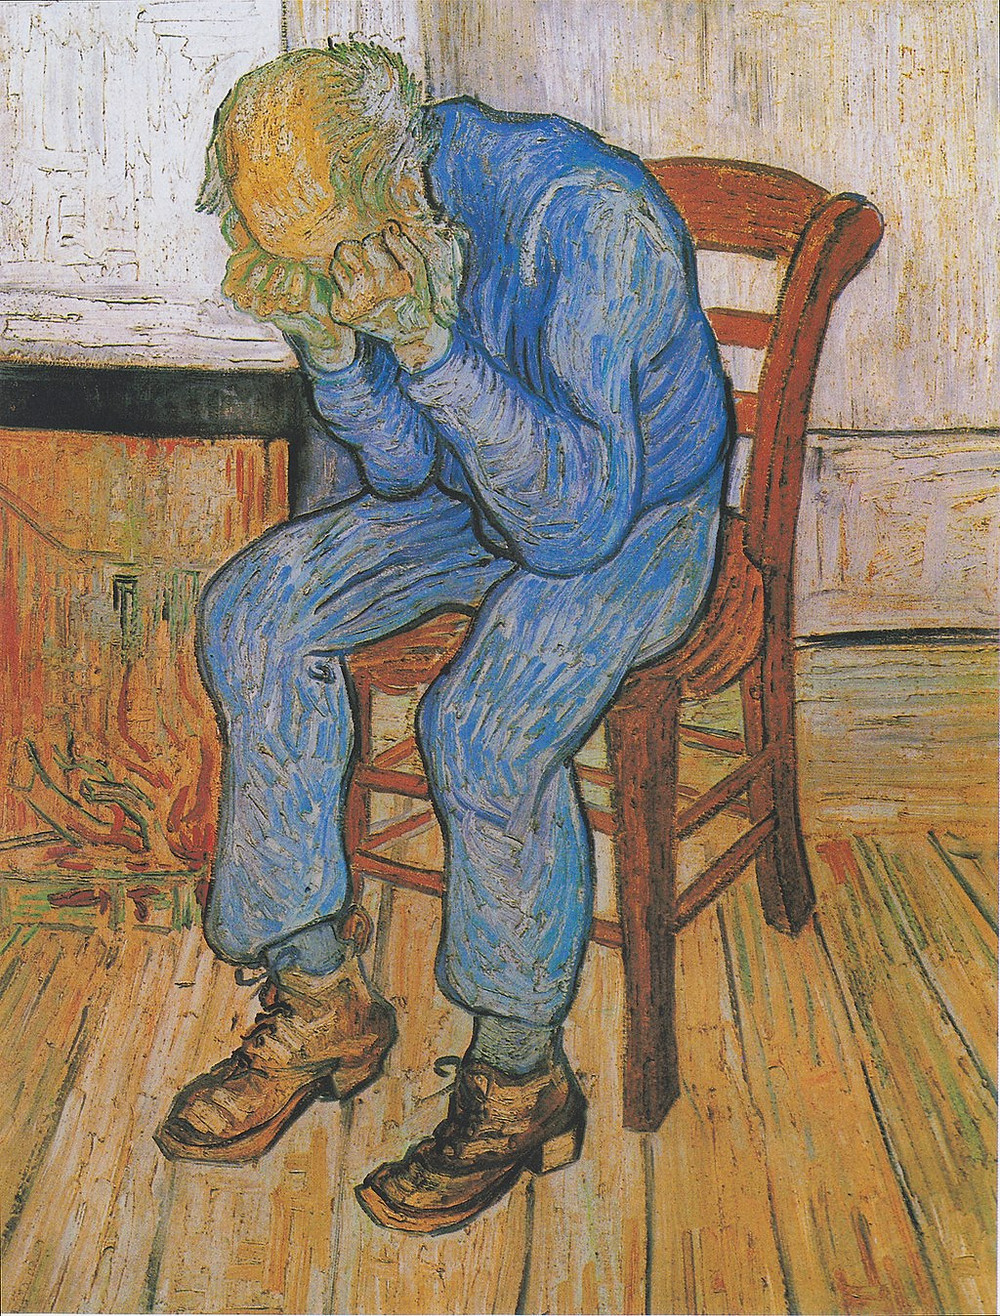 Vincent Van Gogh, Worn Out: At Eternity's Gate, 1890